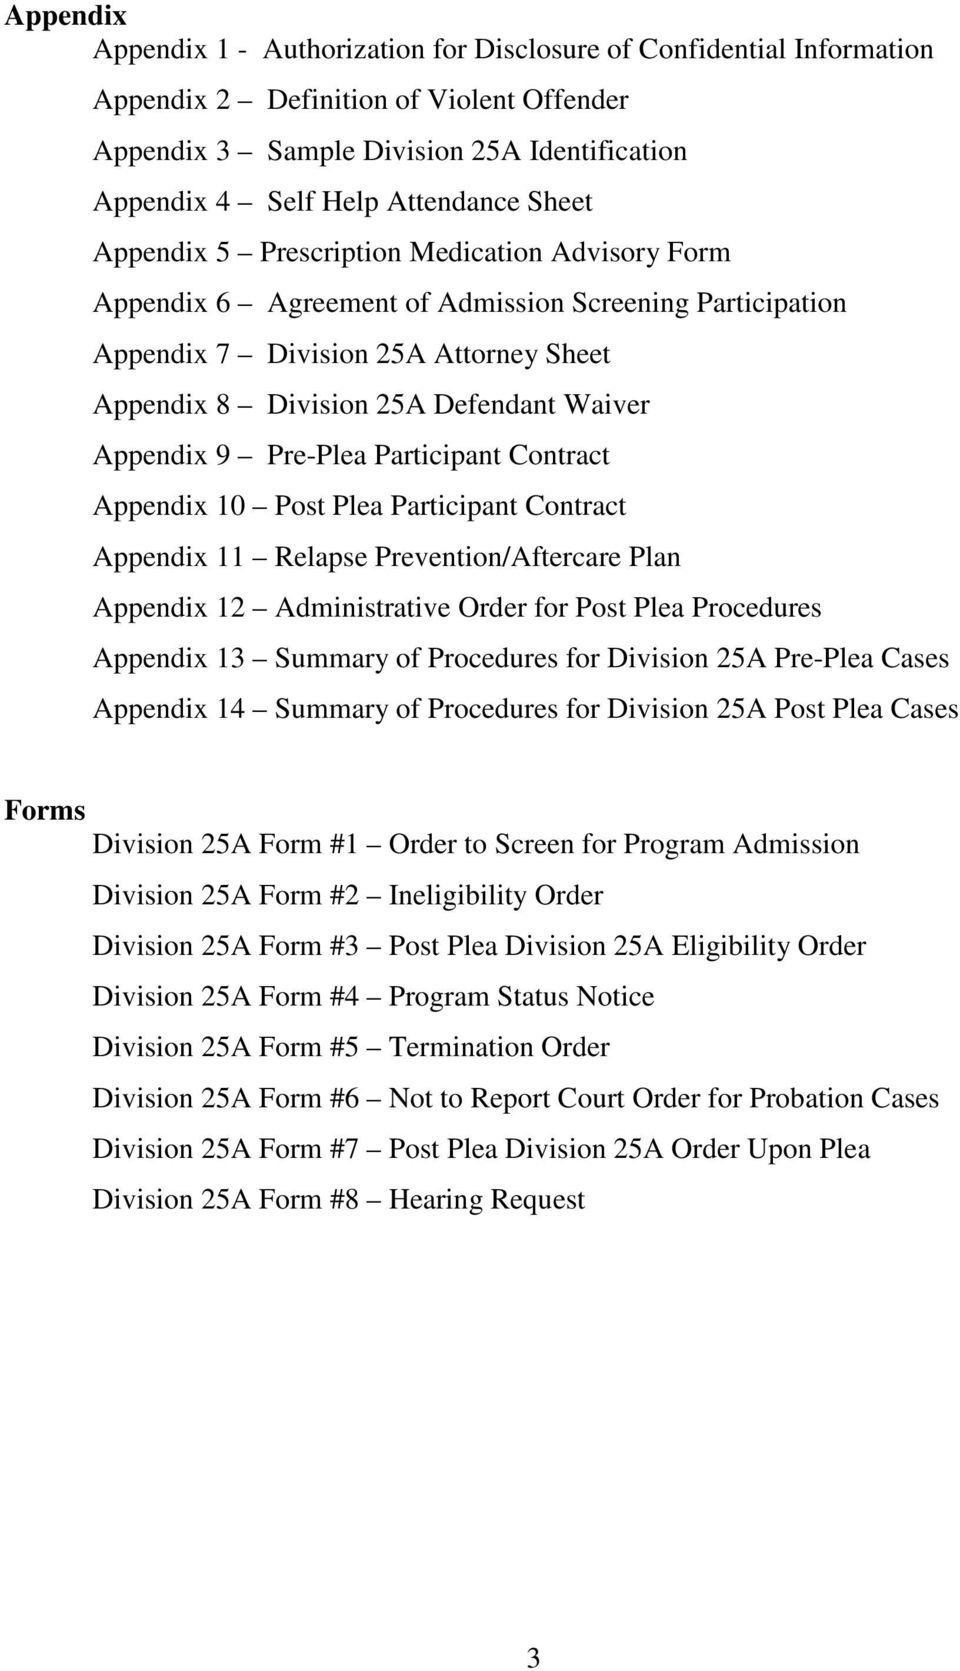 Appendix 9 Pre-Plea Participant Contract Appendix 10 Post Plea Participant Contract Appendix 11 Relapse Prevention/Aftercare Plan Appendix 12 Administrative Order for Post Plea Procedures Appendix 13